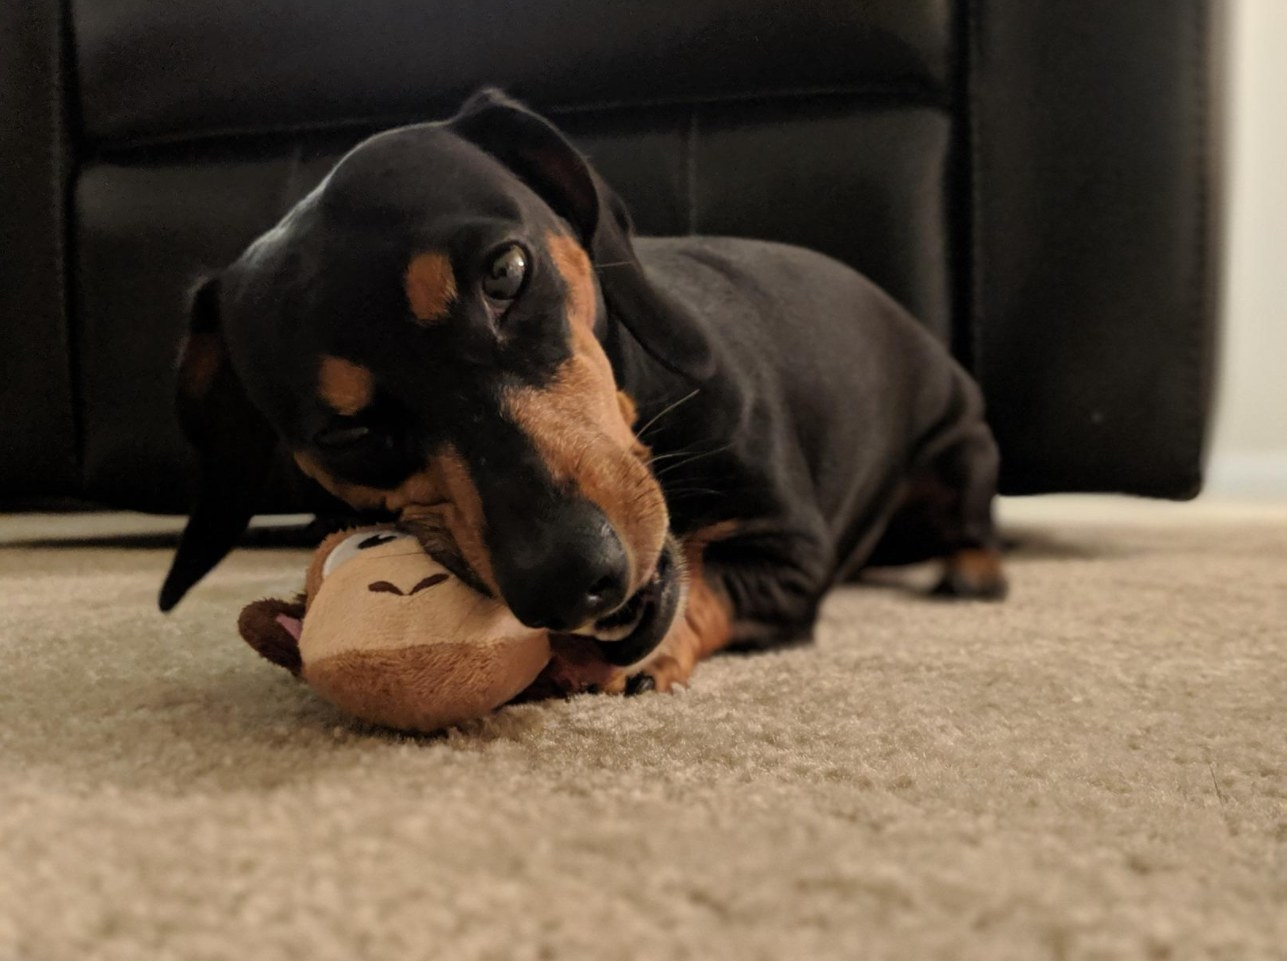 A dog chewing on the squeak toy